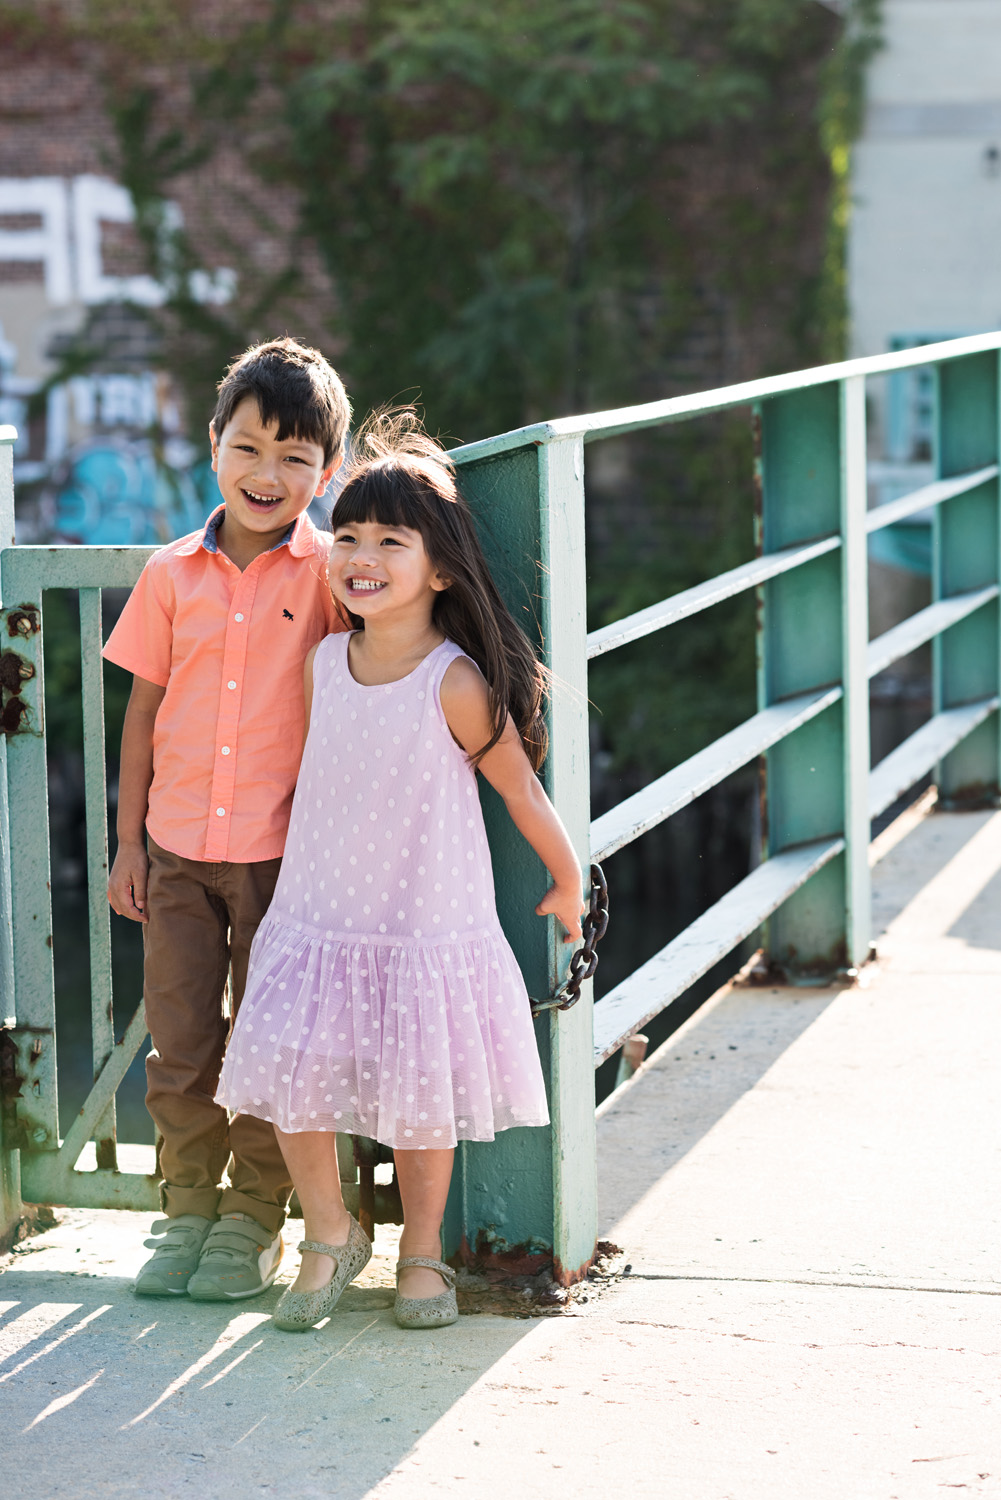 Gowanus Family Photographer-09302018_323.jpg